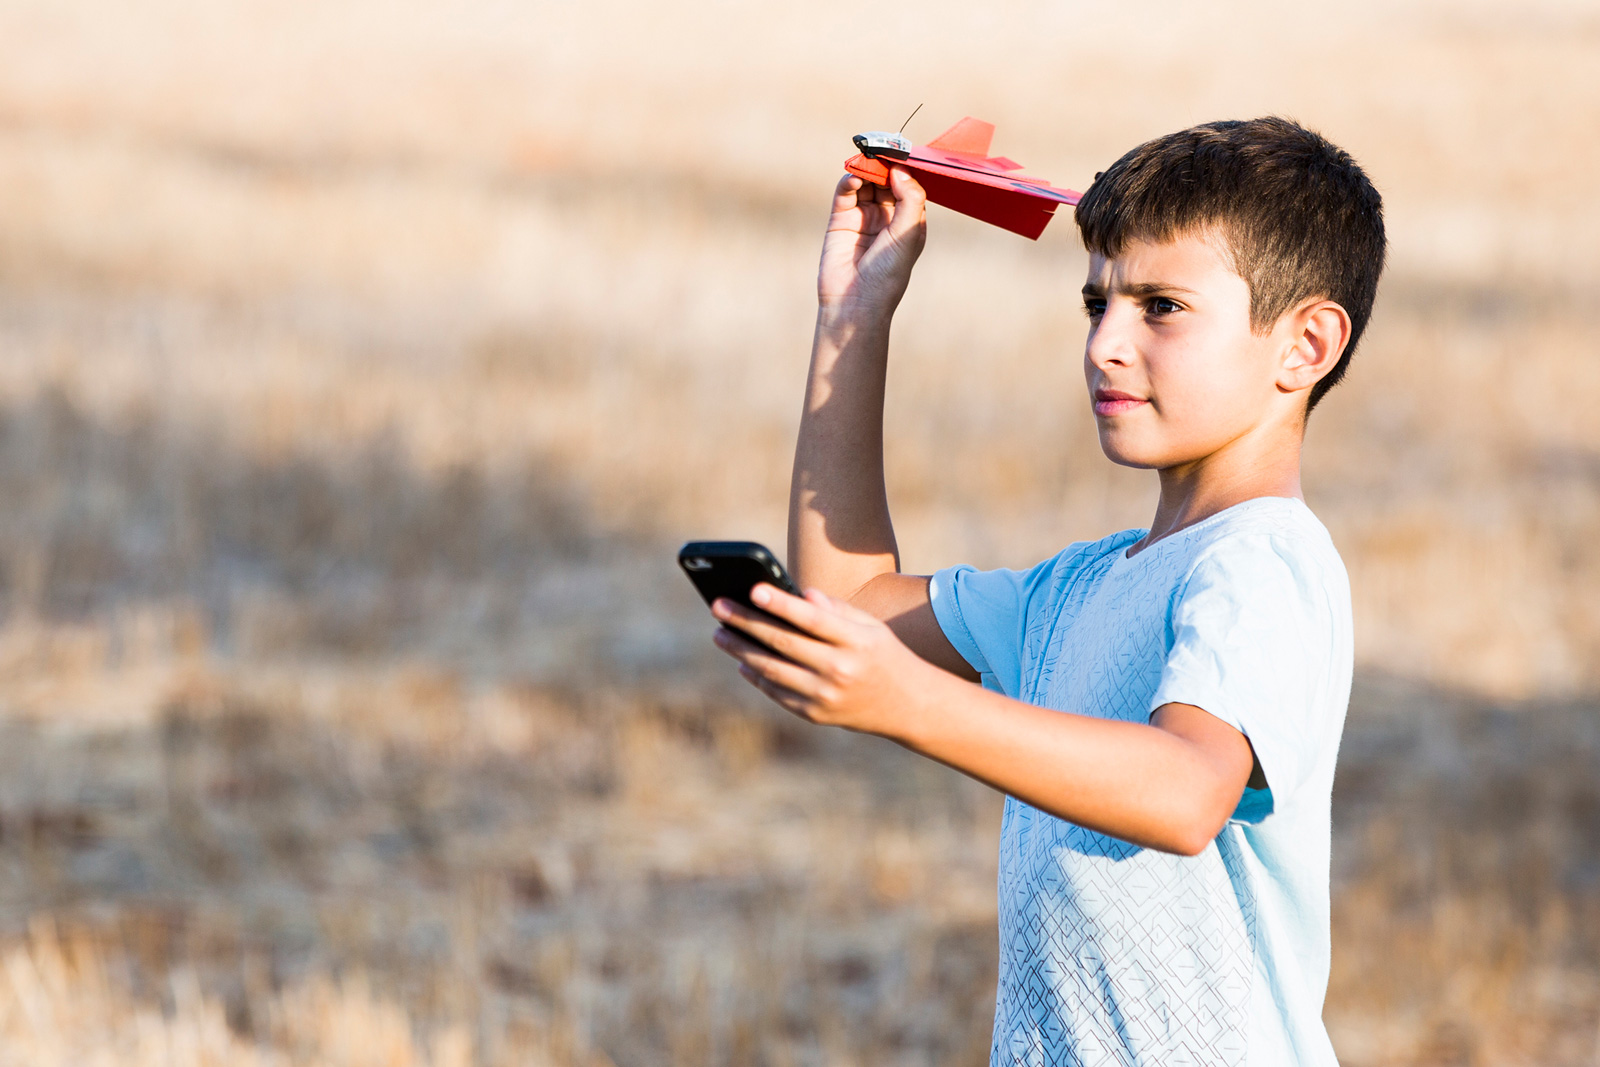 photo image PowerUp releases its phone-controlled paper airplane